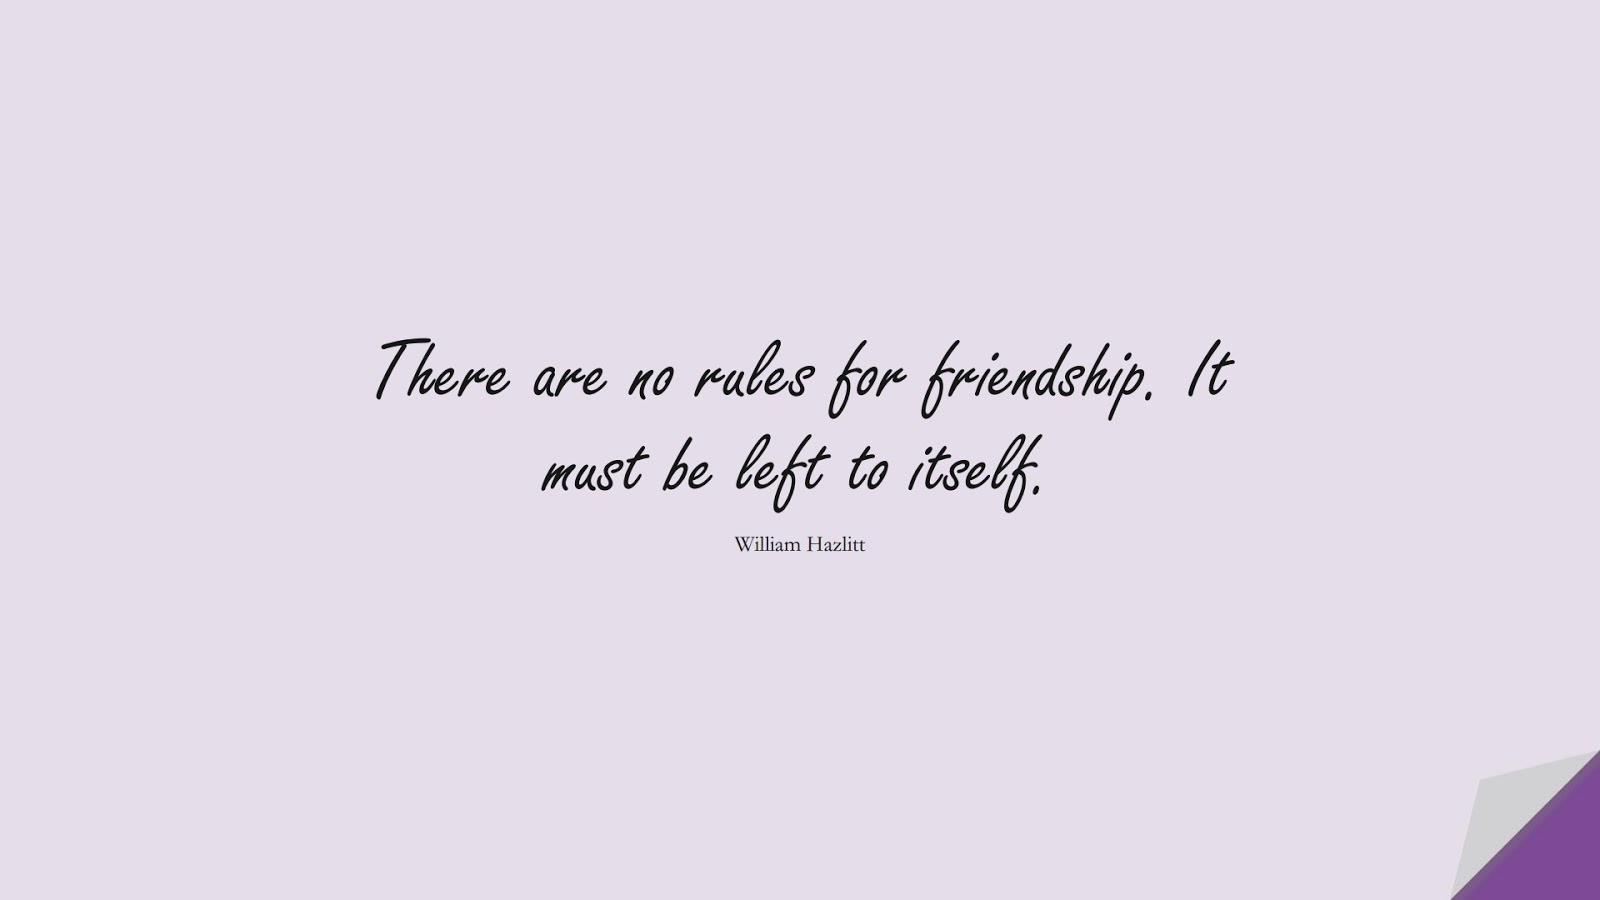 There are no rules for friendship. It must be left to itself. (William Hazlitt);  #FriendshipQuotes